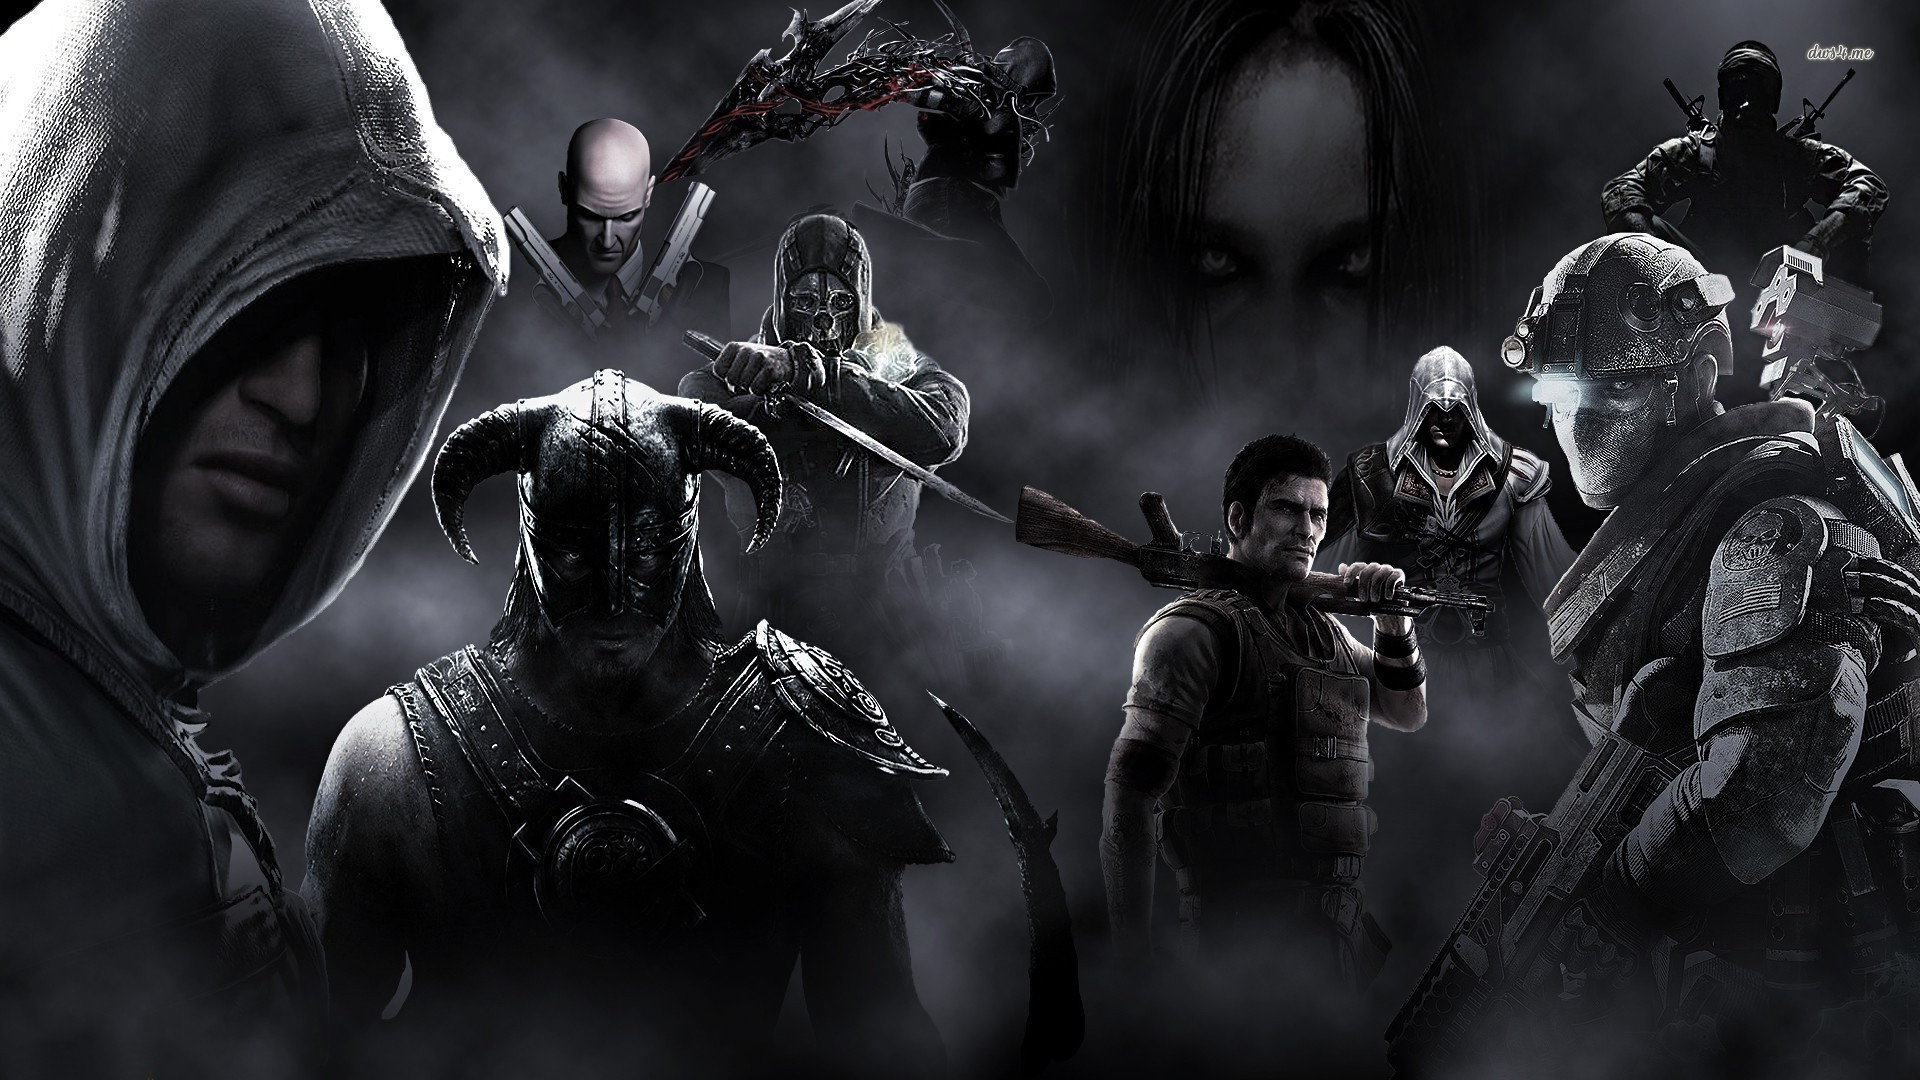 Video Game Characters ID: 504309624 Wallpaper for Free – Amazing HD  Widescreen Picture